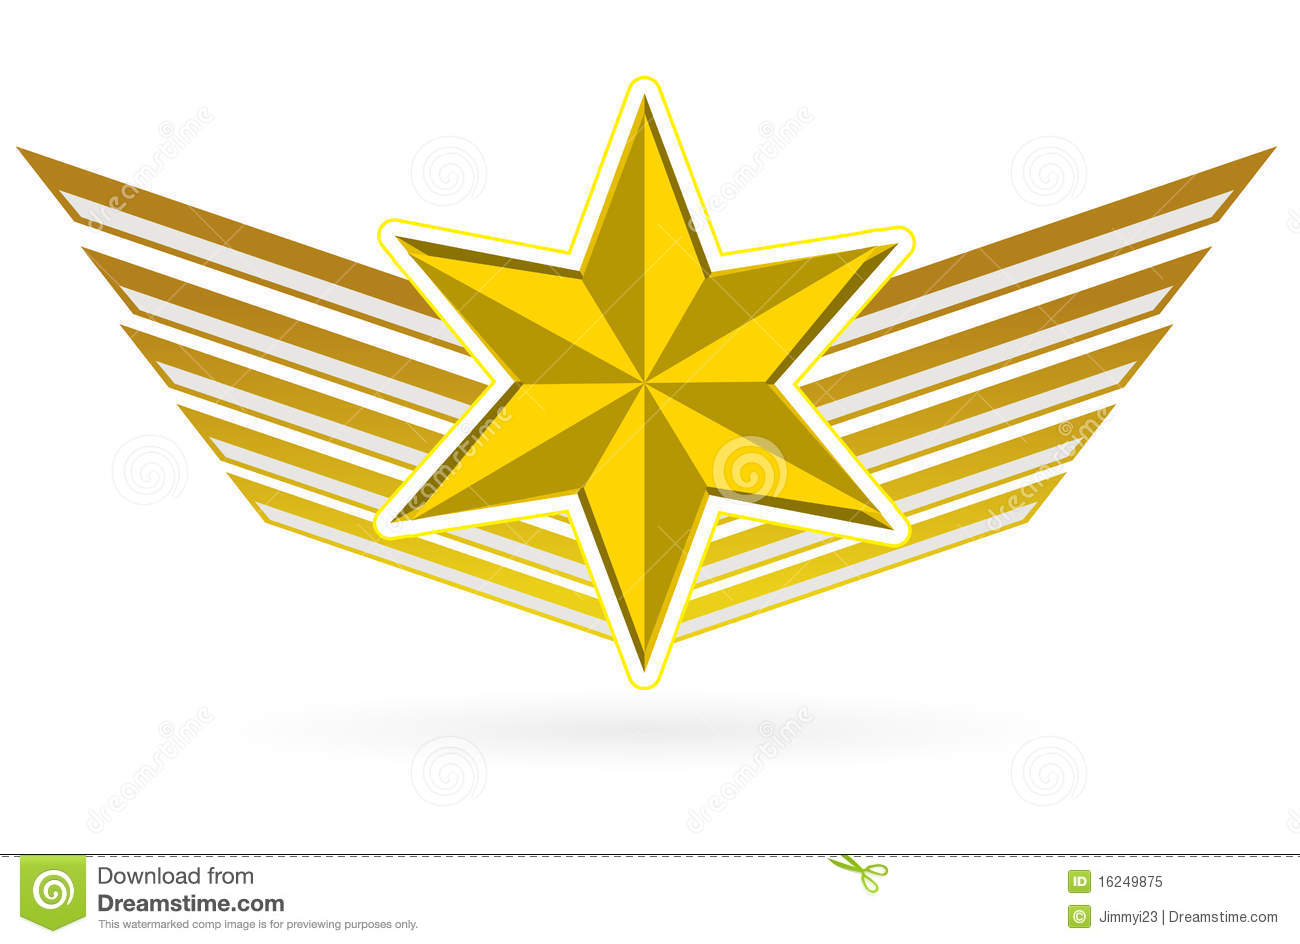 the gold star wing ele...